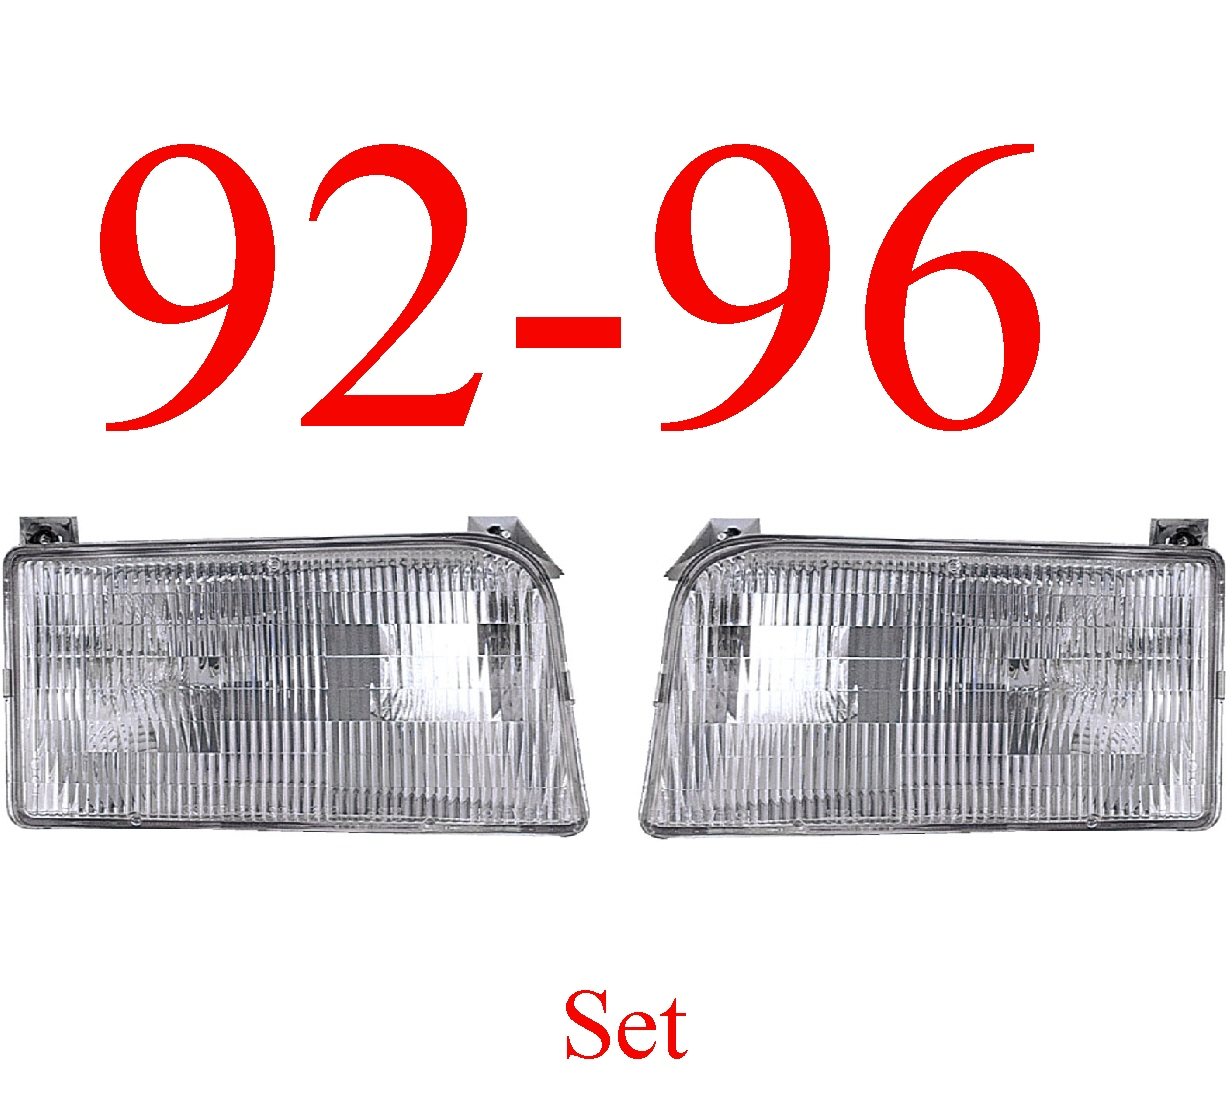 92-96 Ford Truck & Bronco Head Light Set